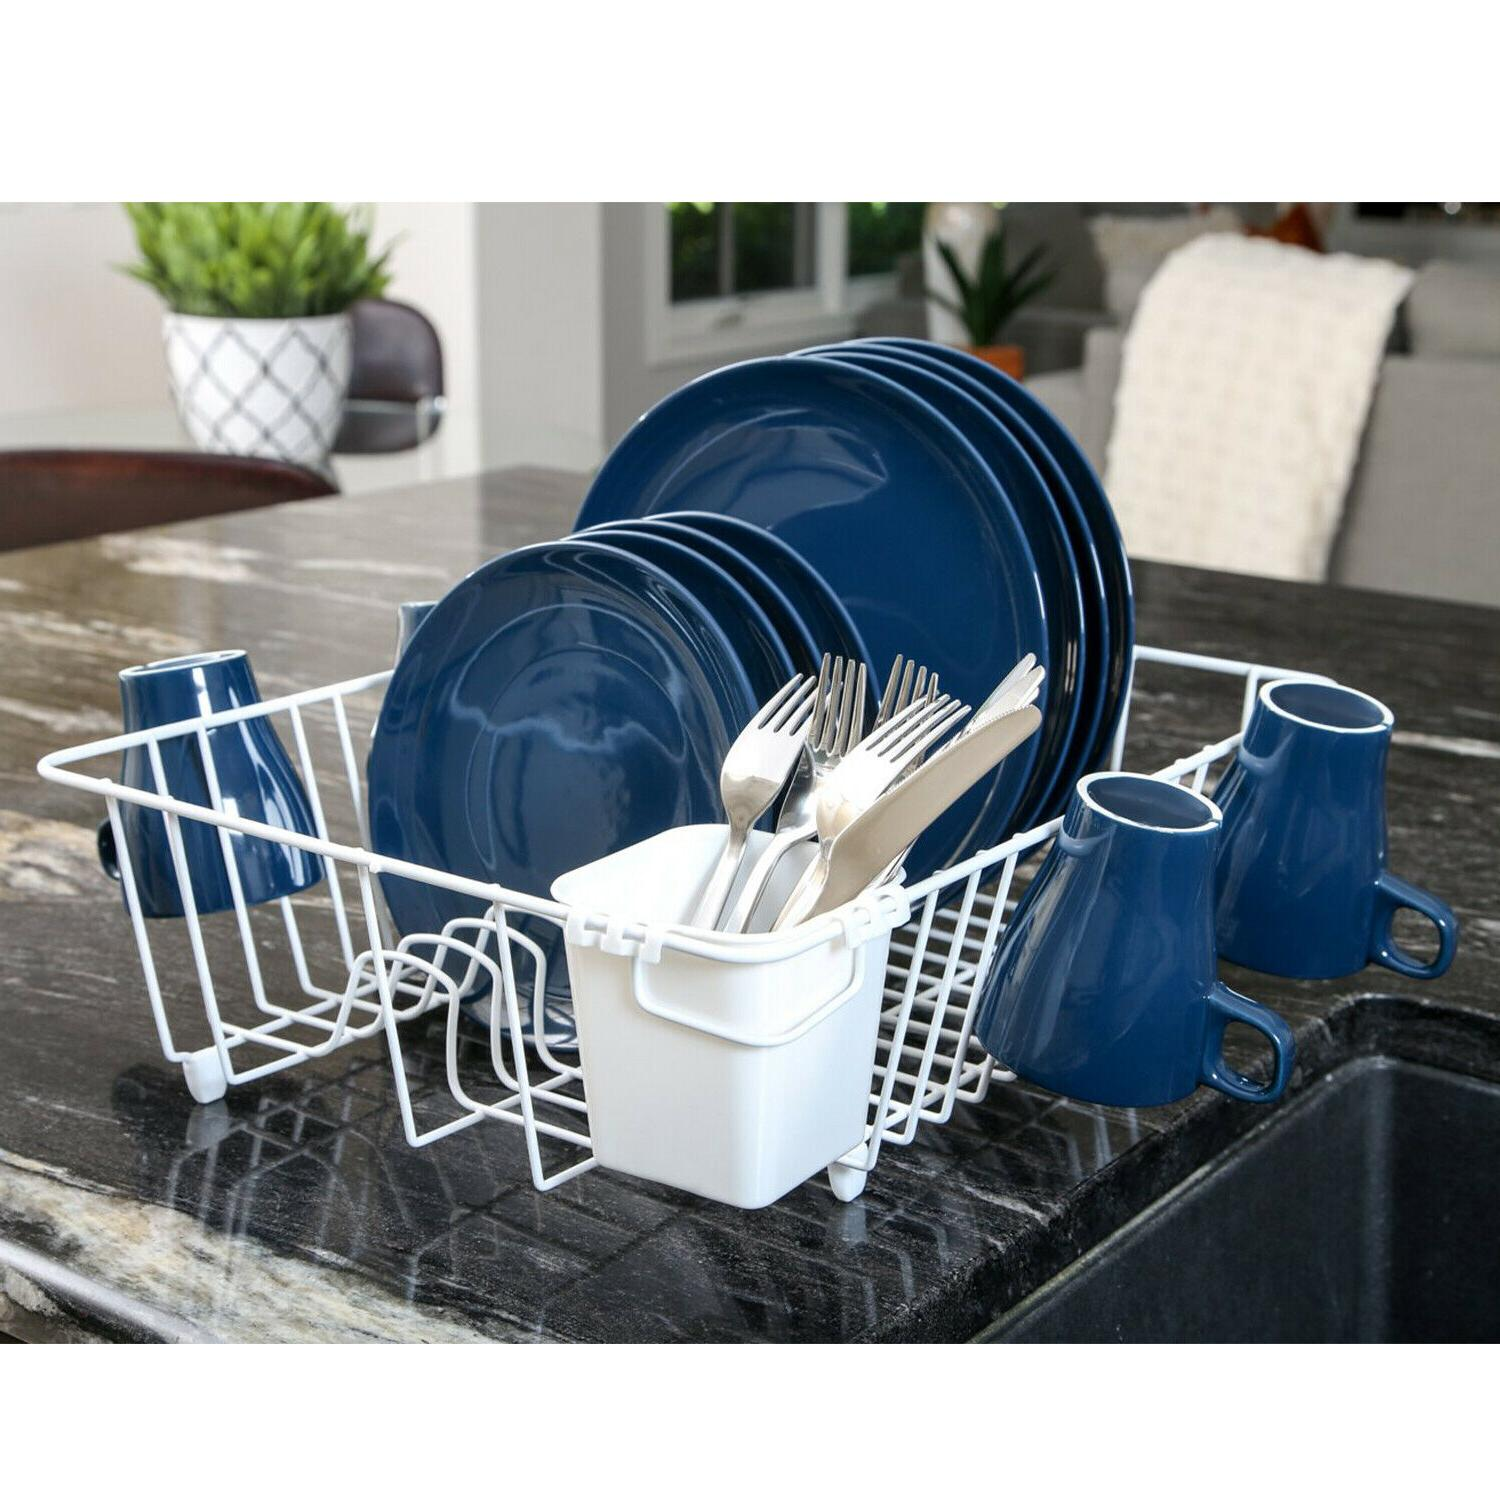 Dish Drying Rack Sink Drainer Cup Cutlery Plates Holder Kitc